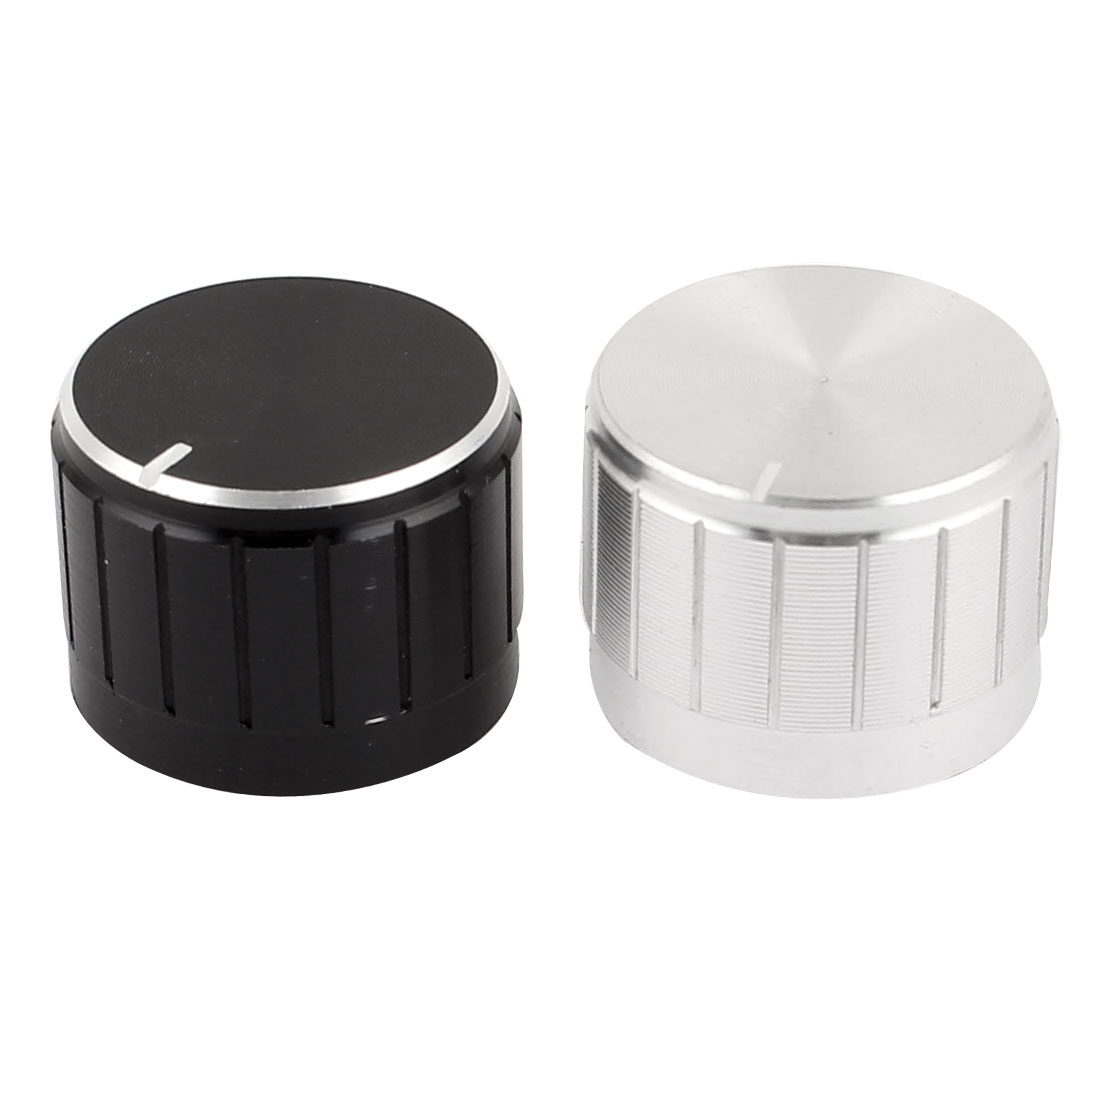 2 Pcs Black Silver Tone Plastic Potentiometer Rotary Control Knobs Caps 17x23mm